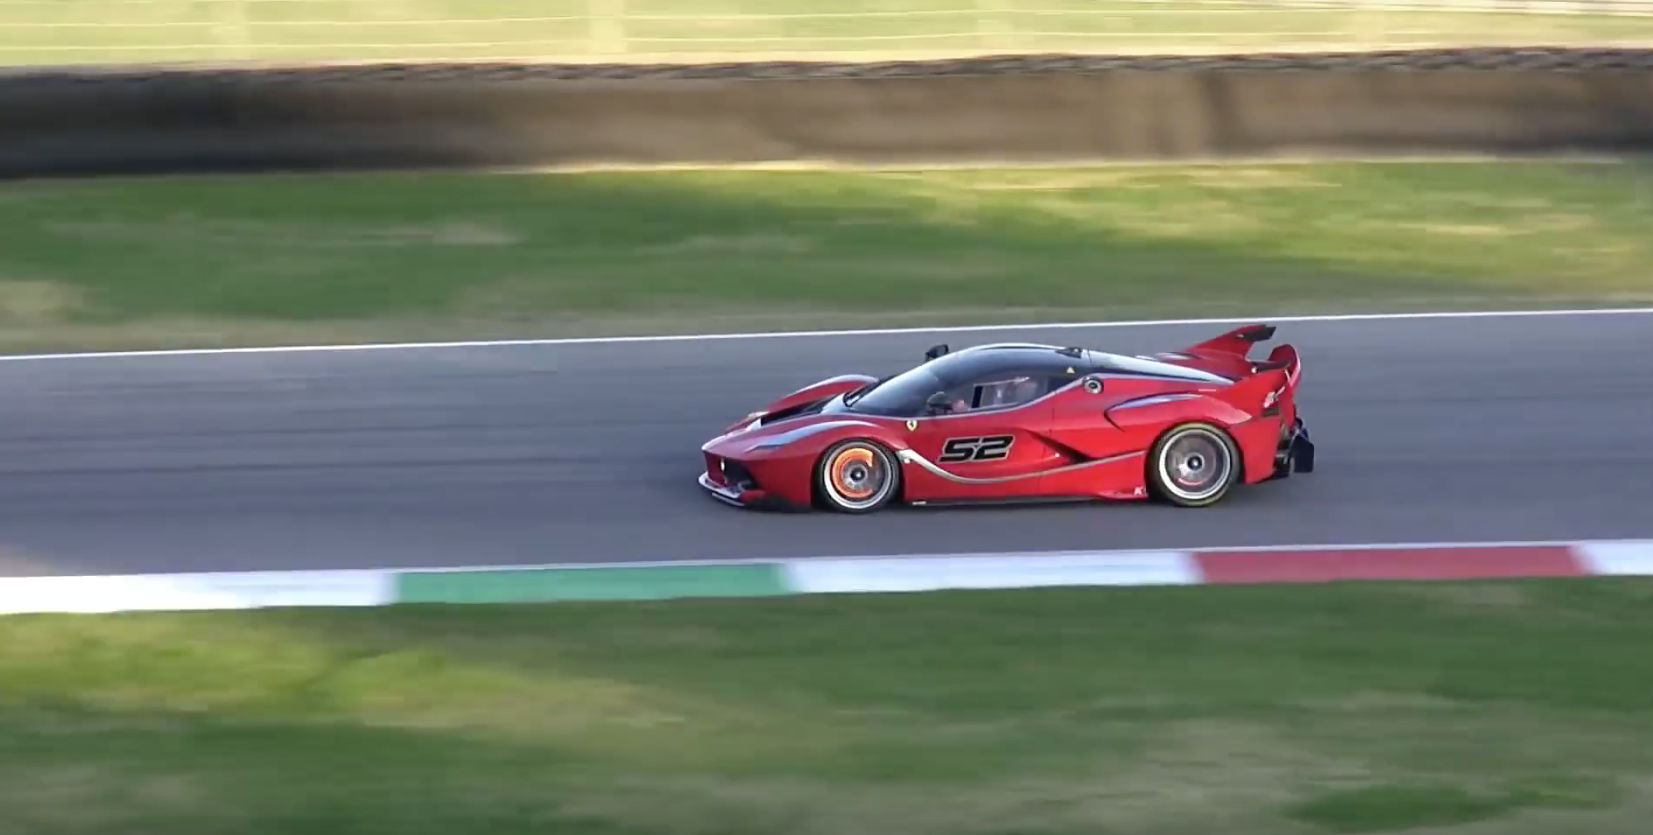 Watch A Bunch Of Ferrari FXX Ks Getting Utterly Thrashed – You Can Thank Us Later